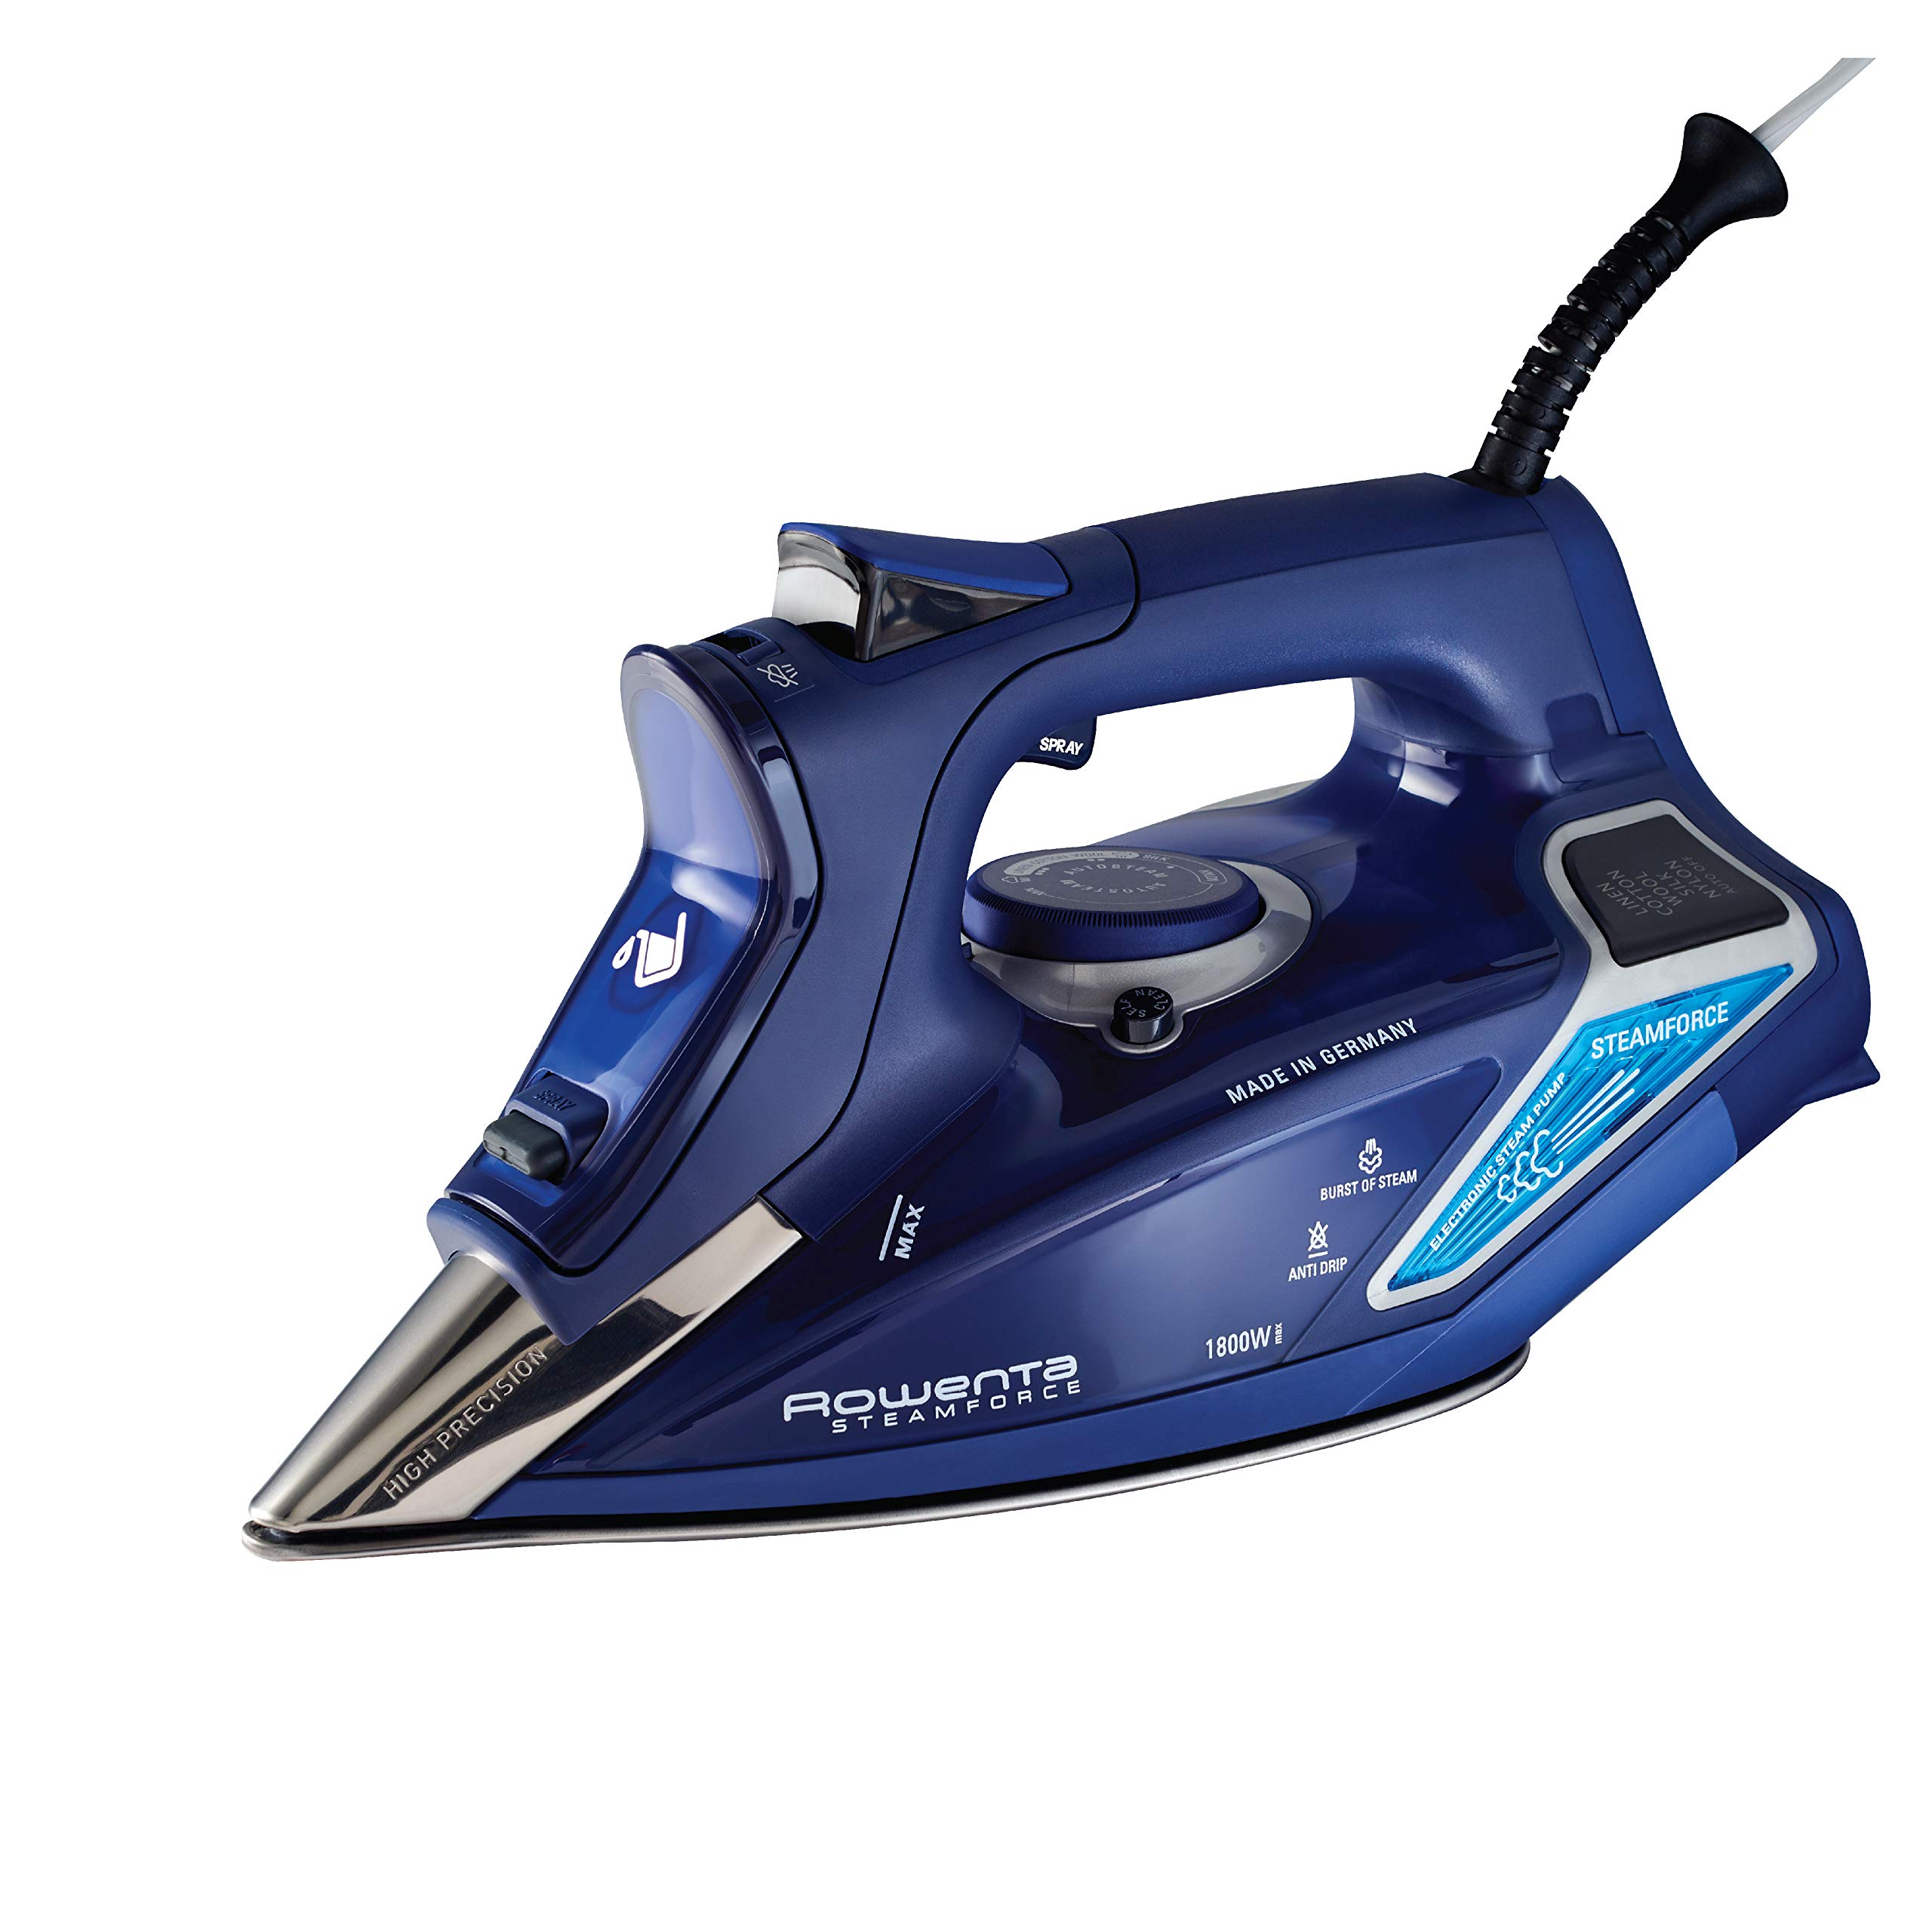 Rowenta DW9280 Digital Display Steam Iron, Stainless Steel Soleplate, 1800-Watt, 400-Hole, Blue by Rowenta